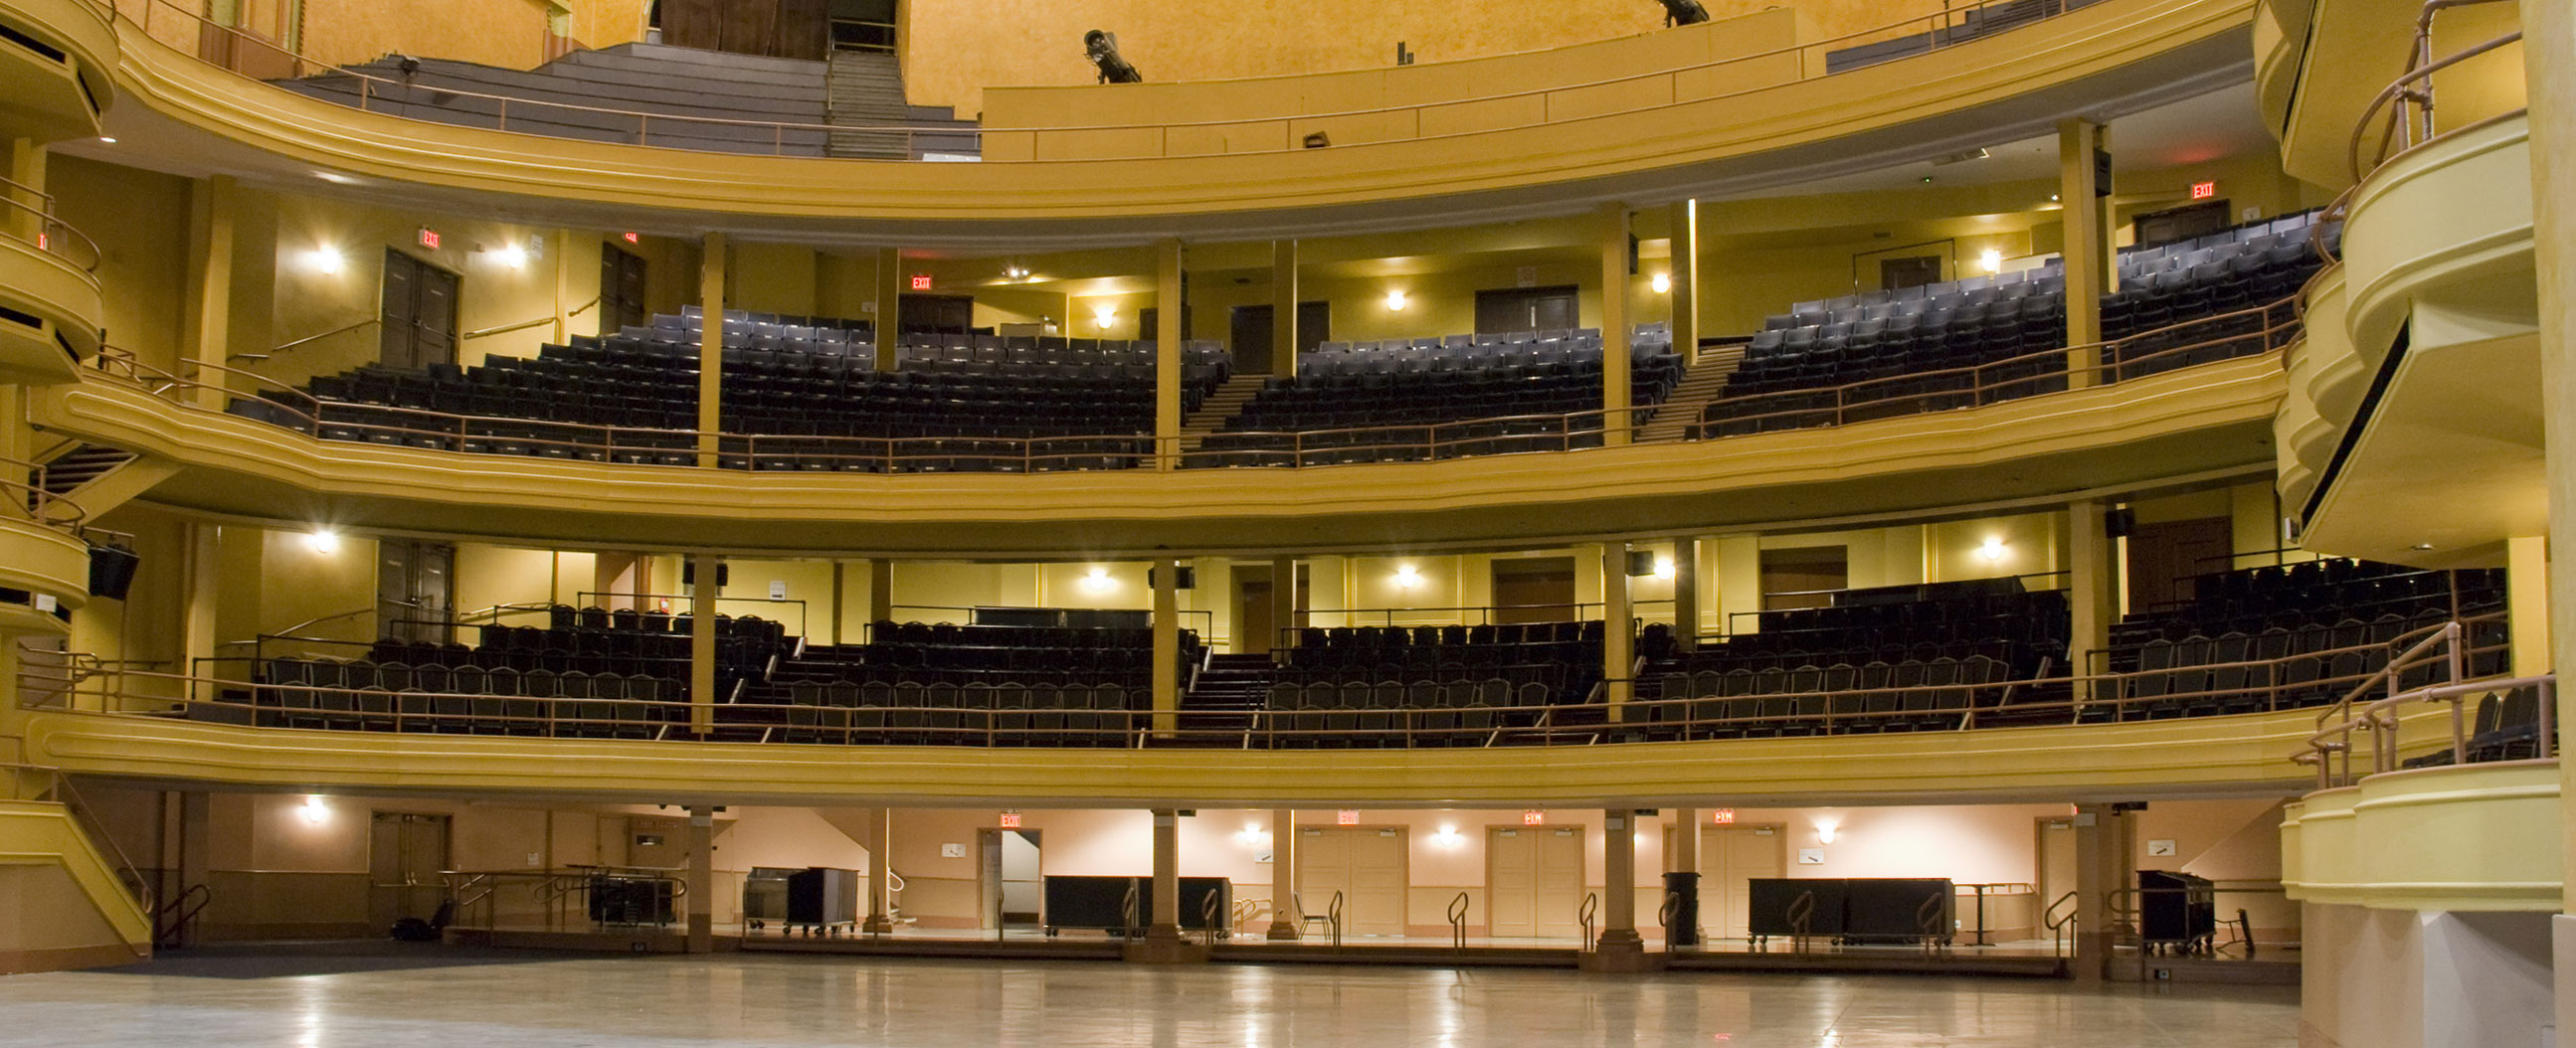 Hammerstein Manhattan Center NY USA